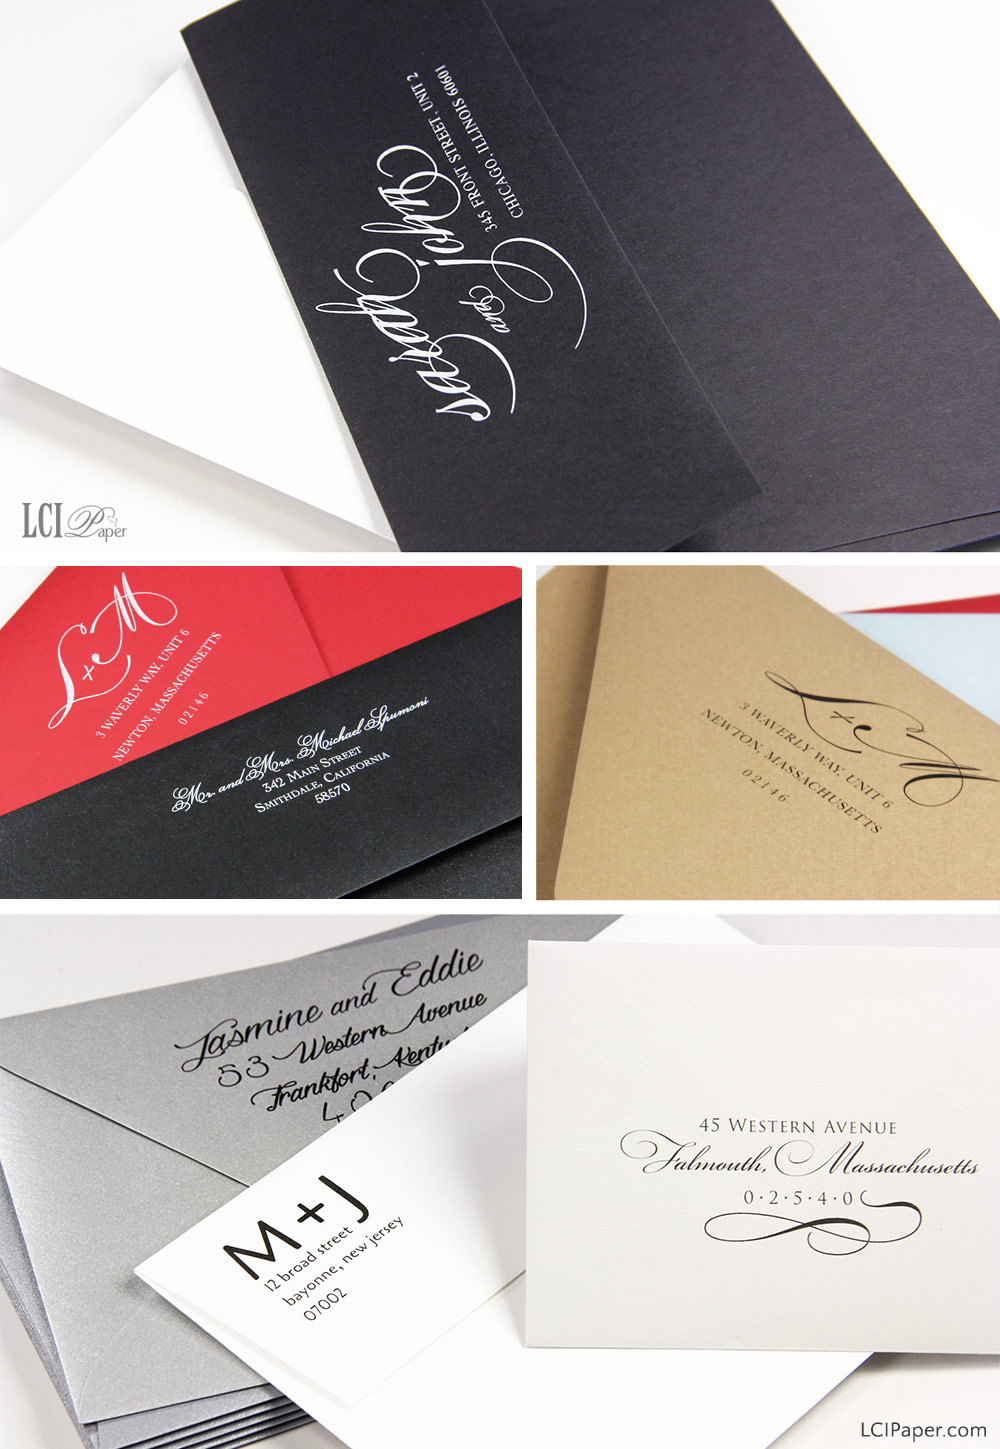 Collage of custom printed envelopes - LCIPaper.com